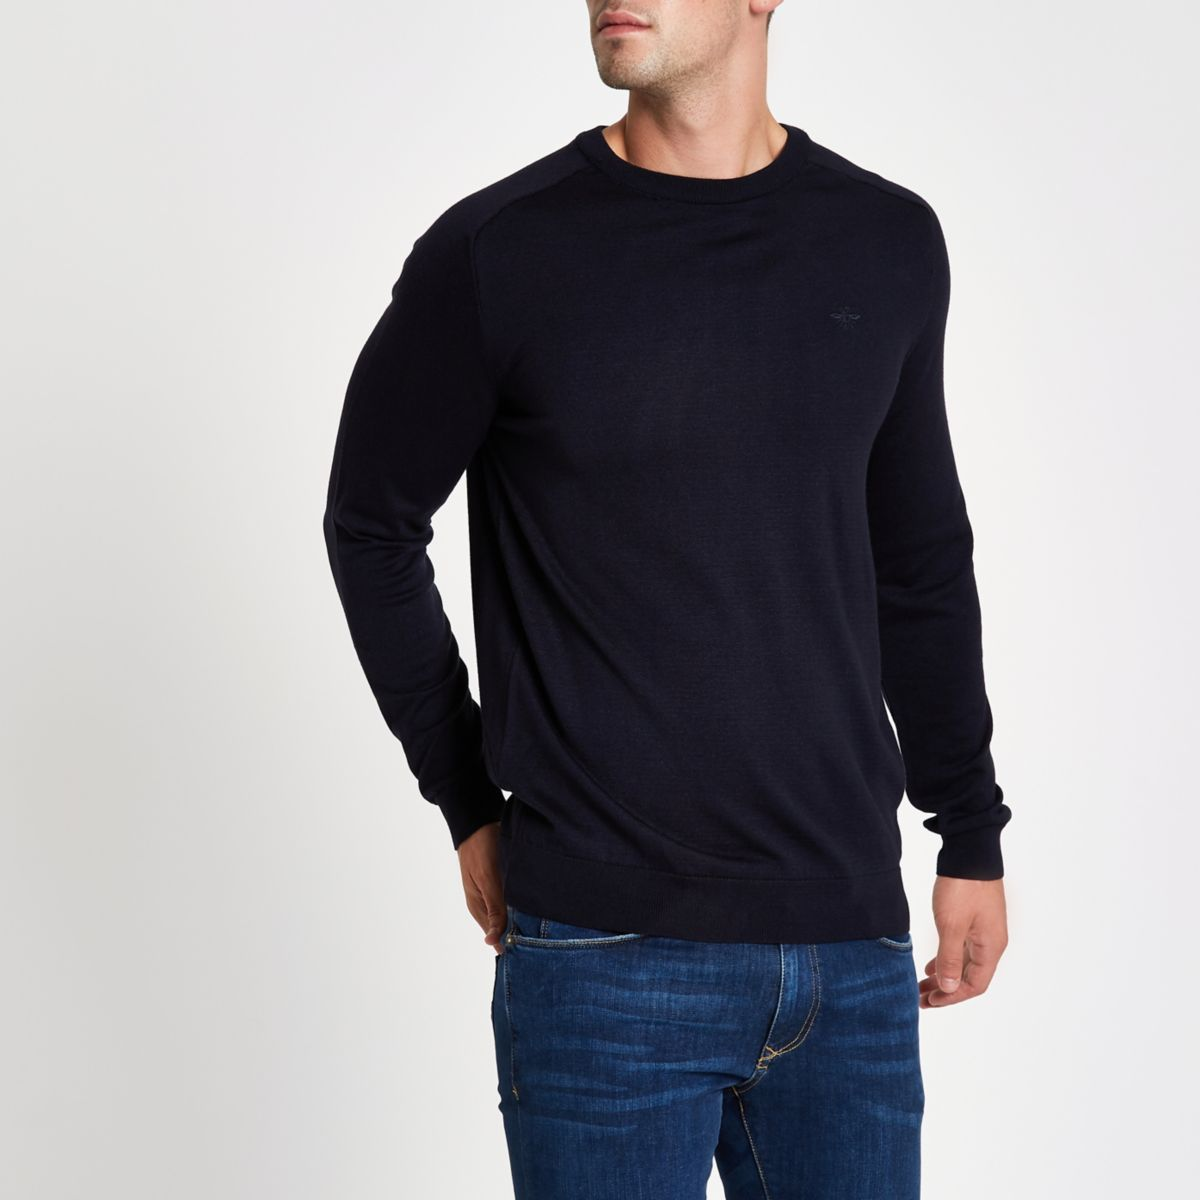 Navy wasp embroidered slim fit sweater